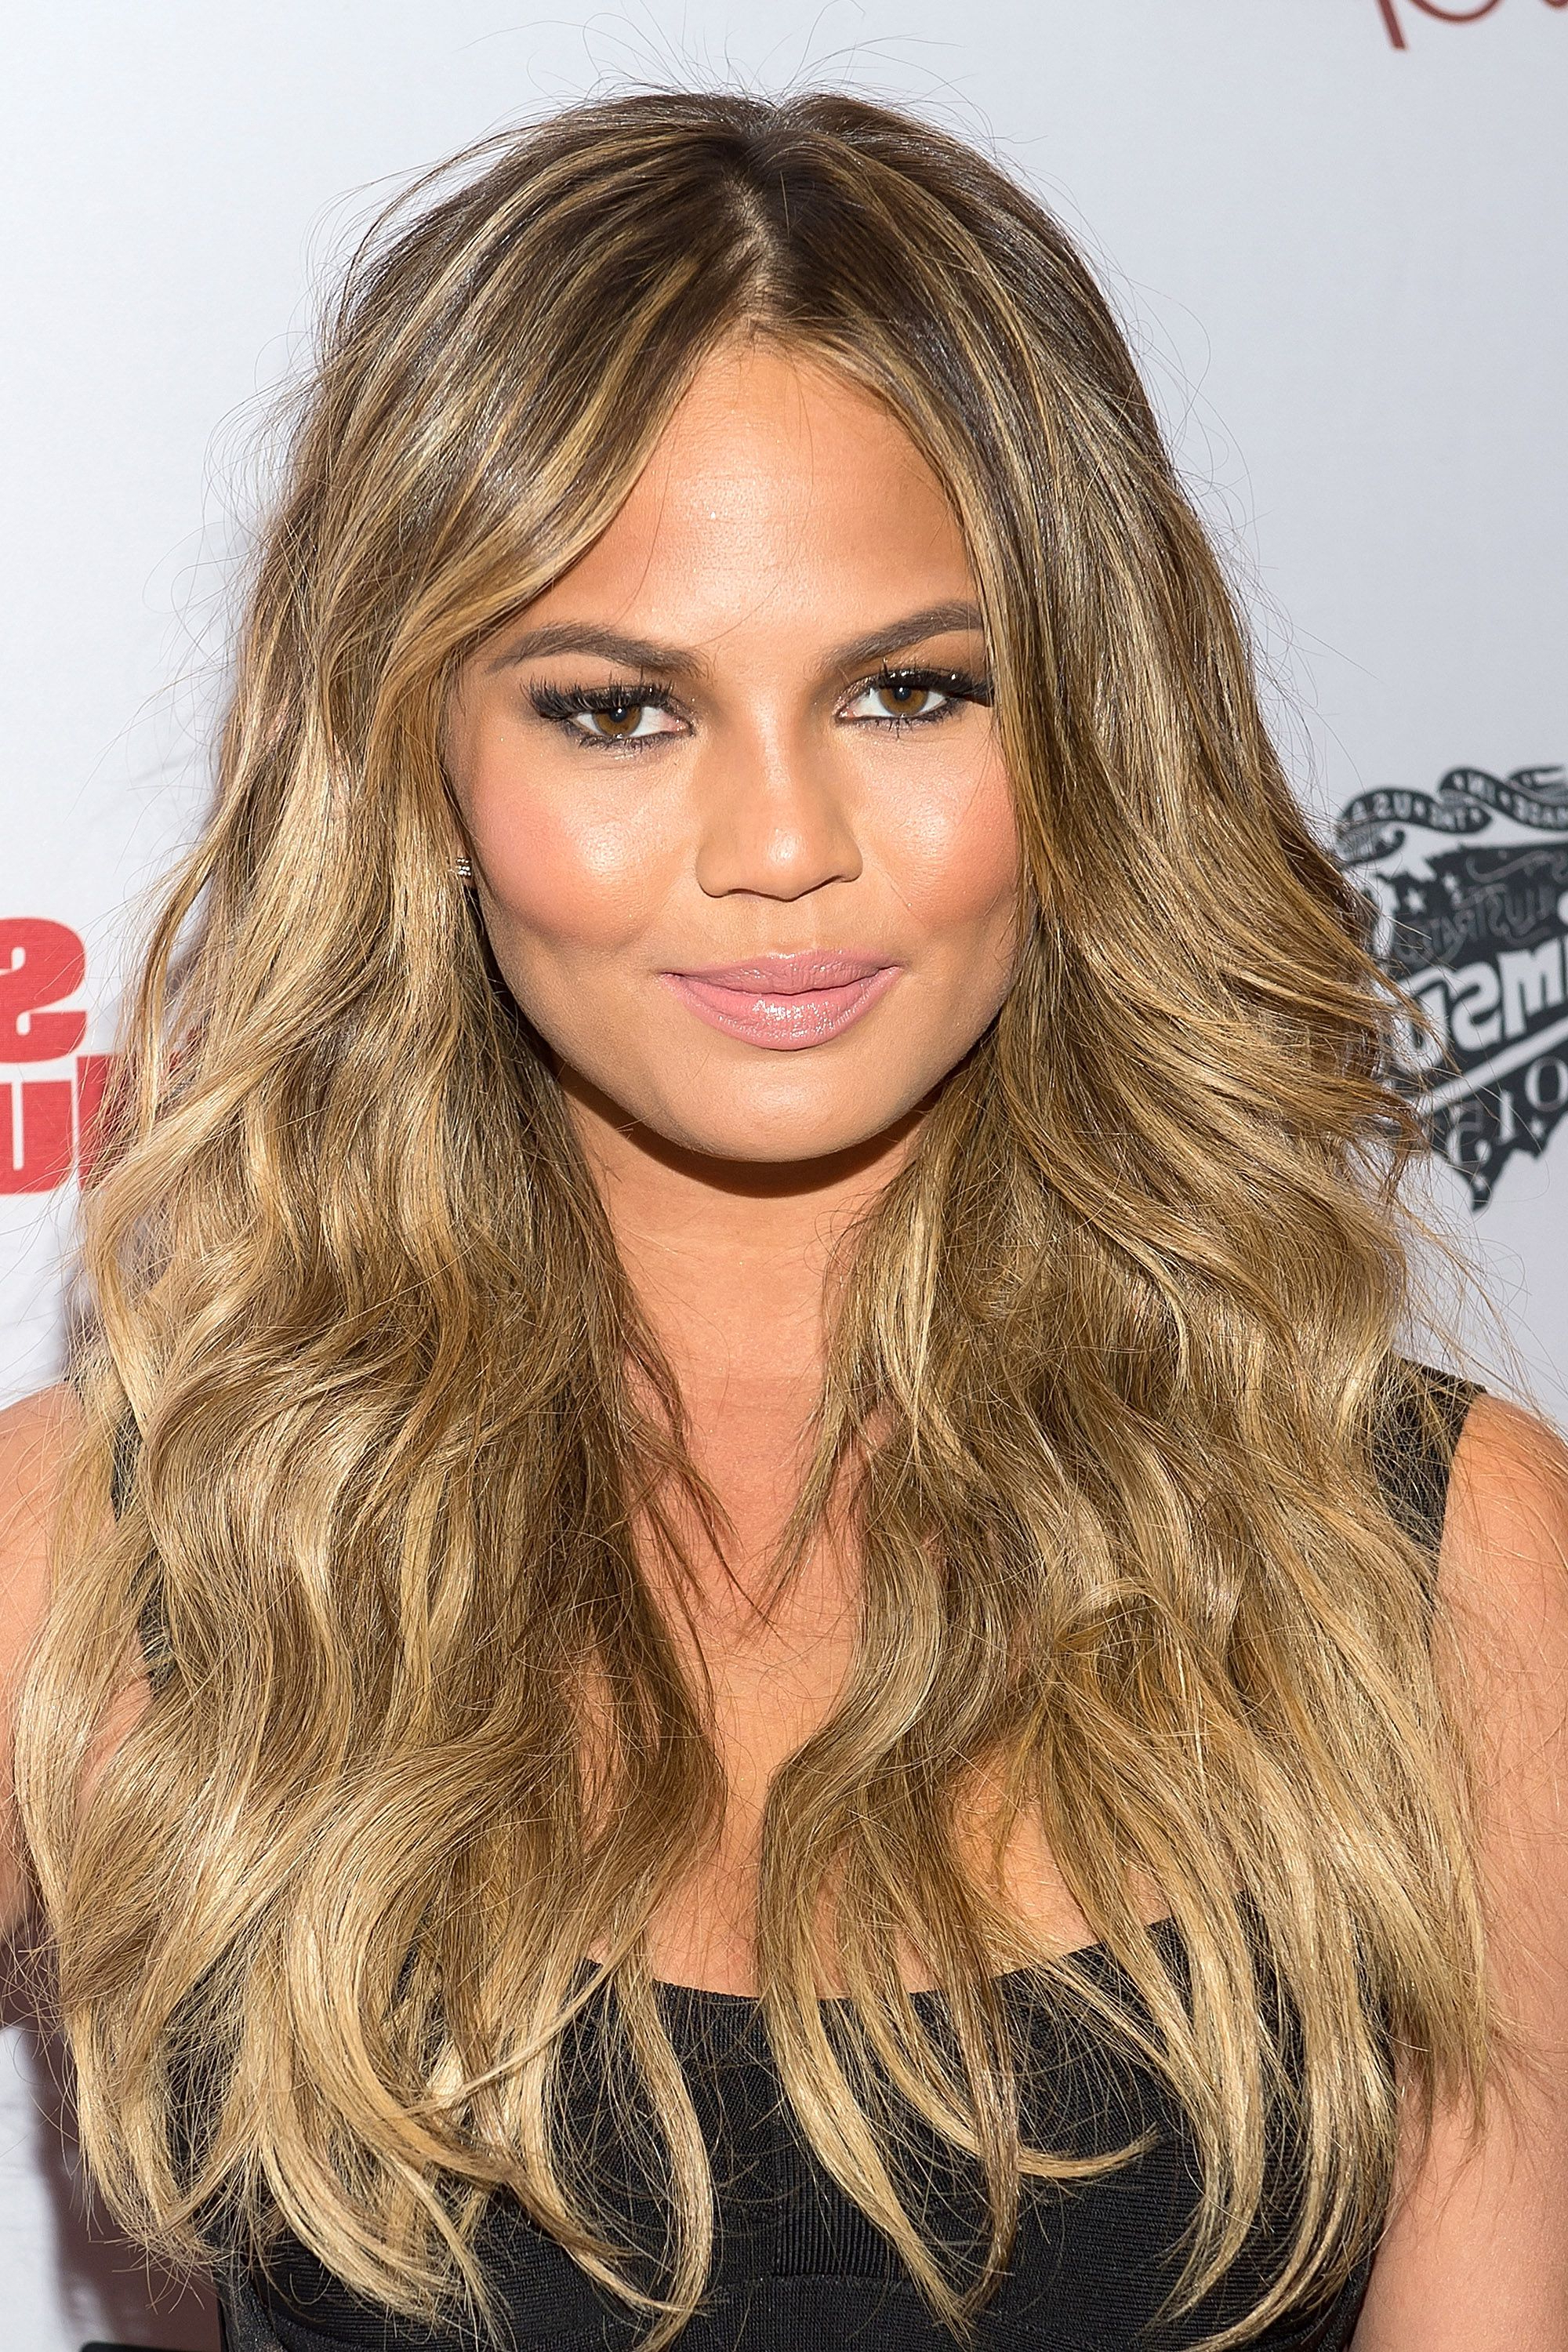 50 Cute Long Layered Hairstyles And Haircut Trends For Women 2019 Pertaining To 2019 Long Layered Waves Hairstyles (View 11 of 20)